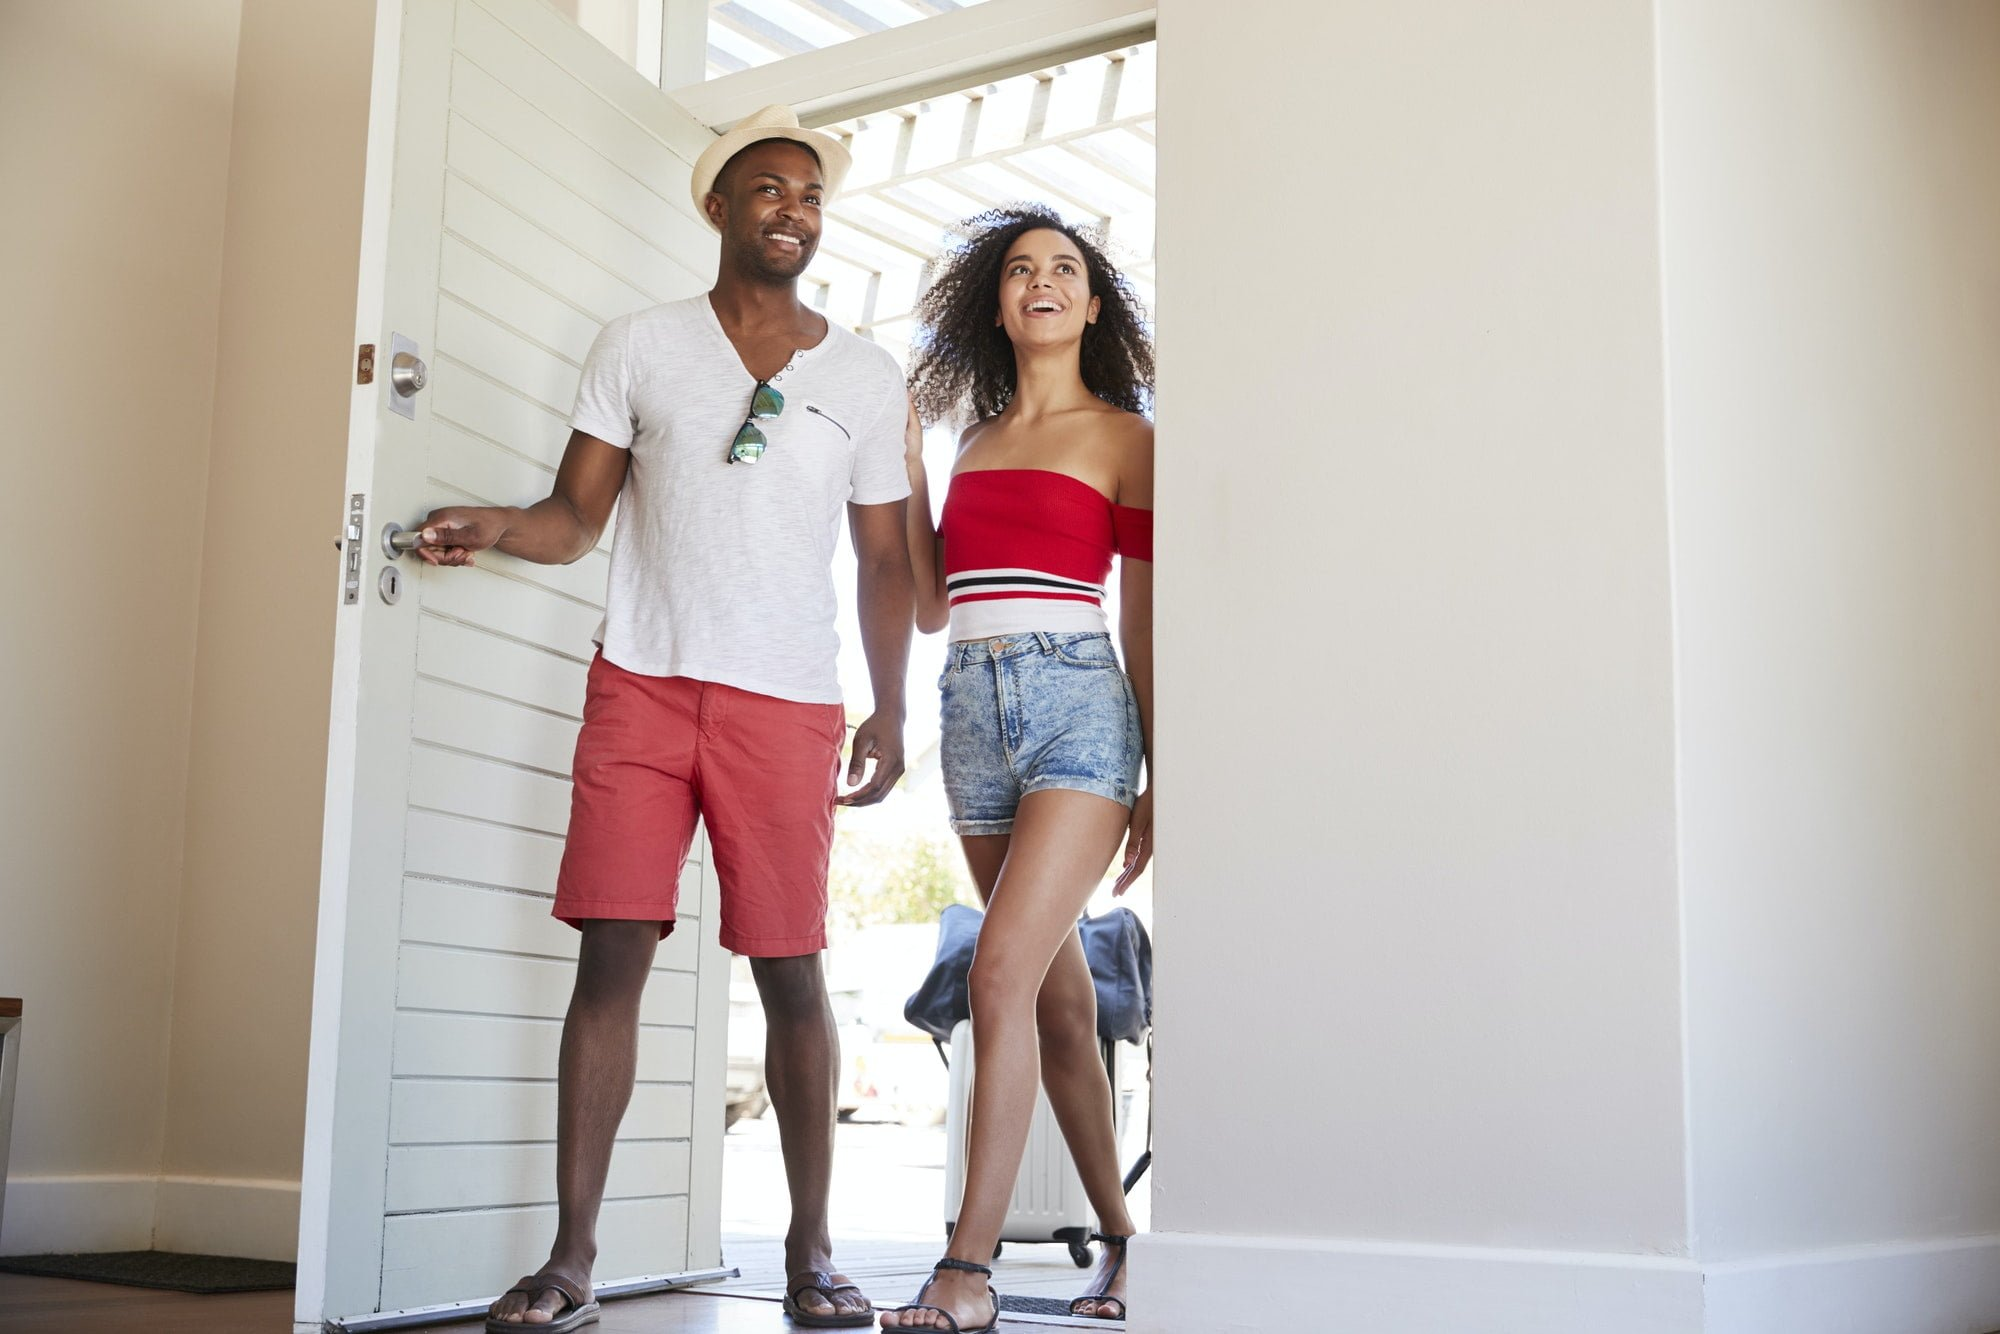 Things to know before moving into a rental property